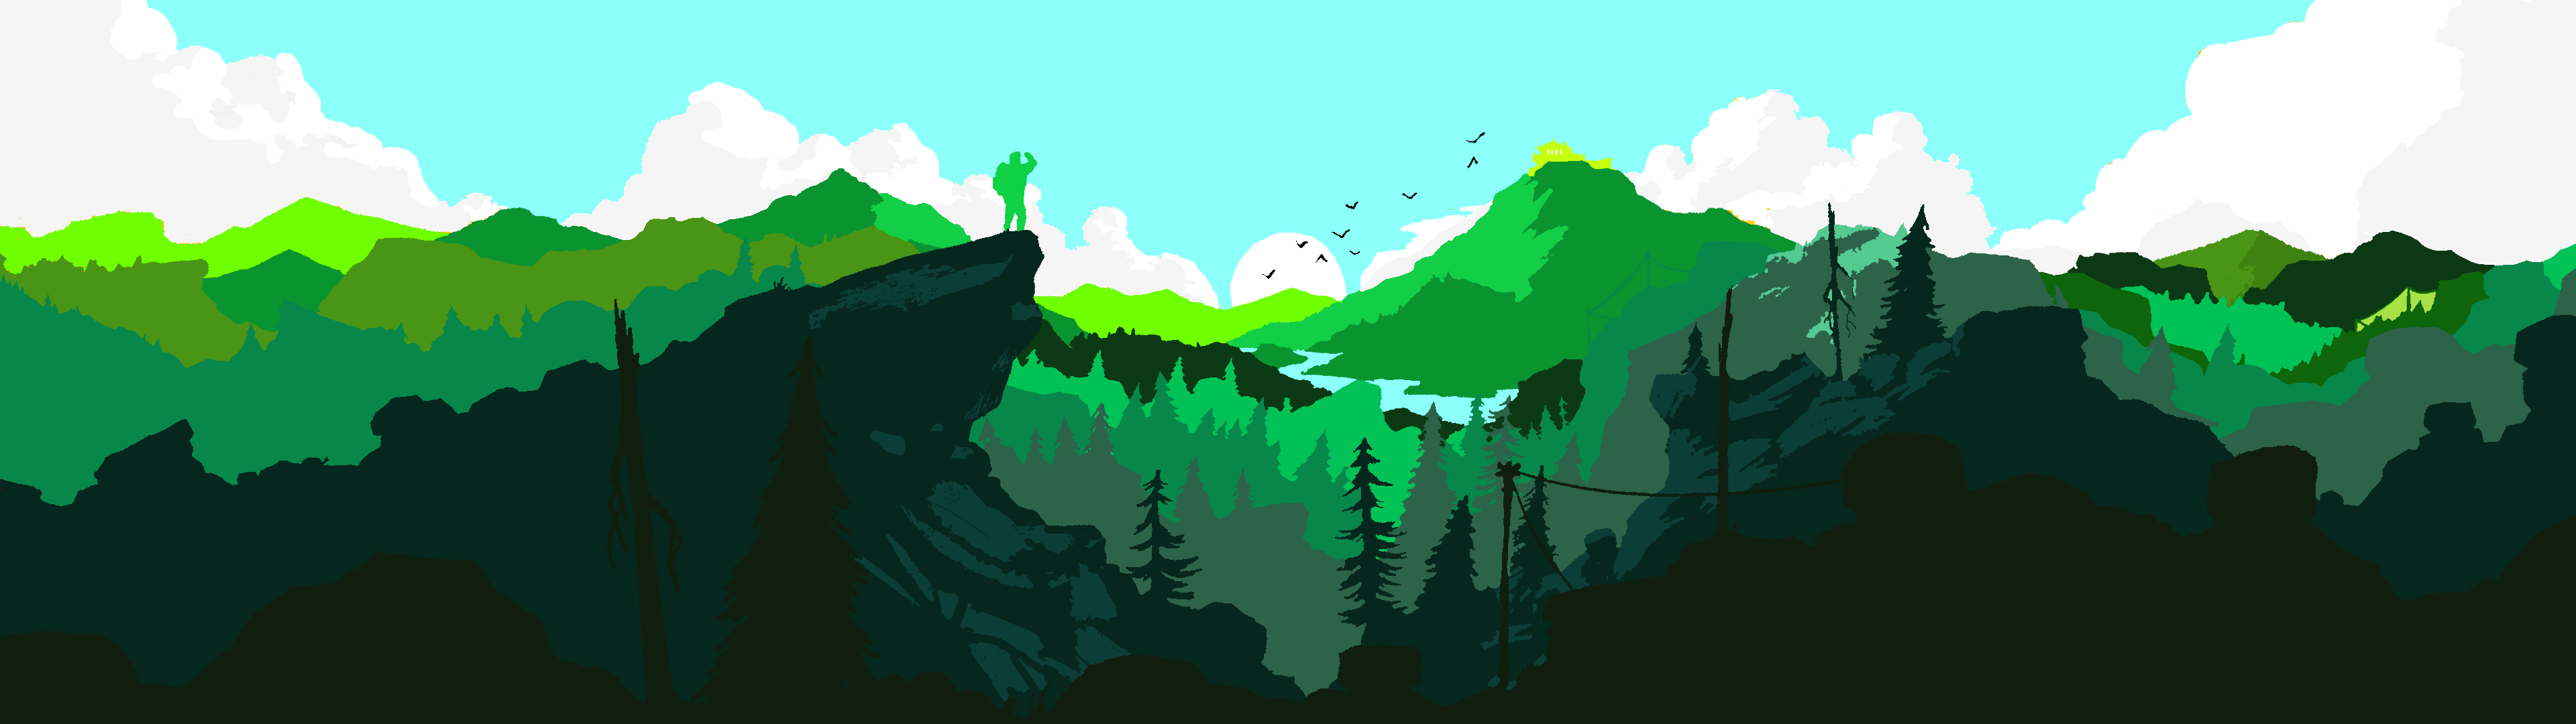 A Dual Monitor Firewatch Wallpaper I Recoloured Because I Couldn T Find It In Green Dual Monitor Wallpaper Wallpaper Recolor